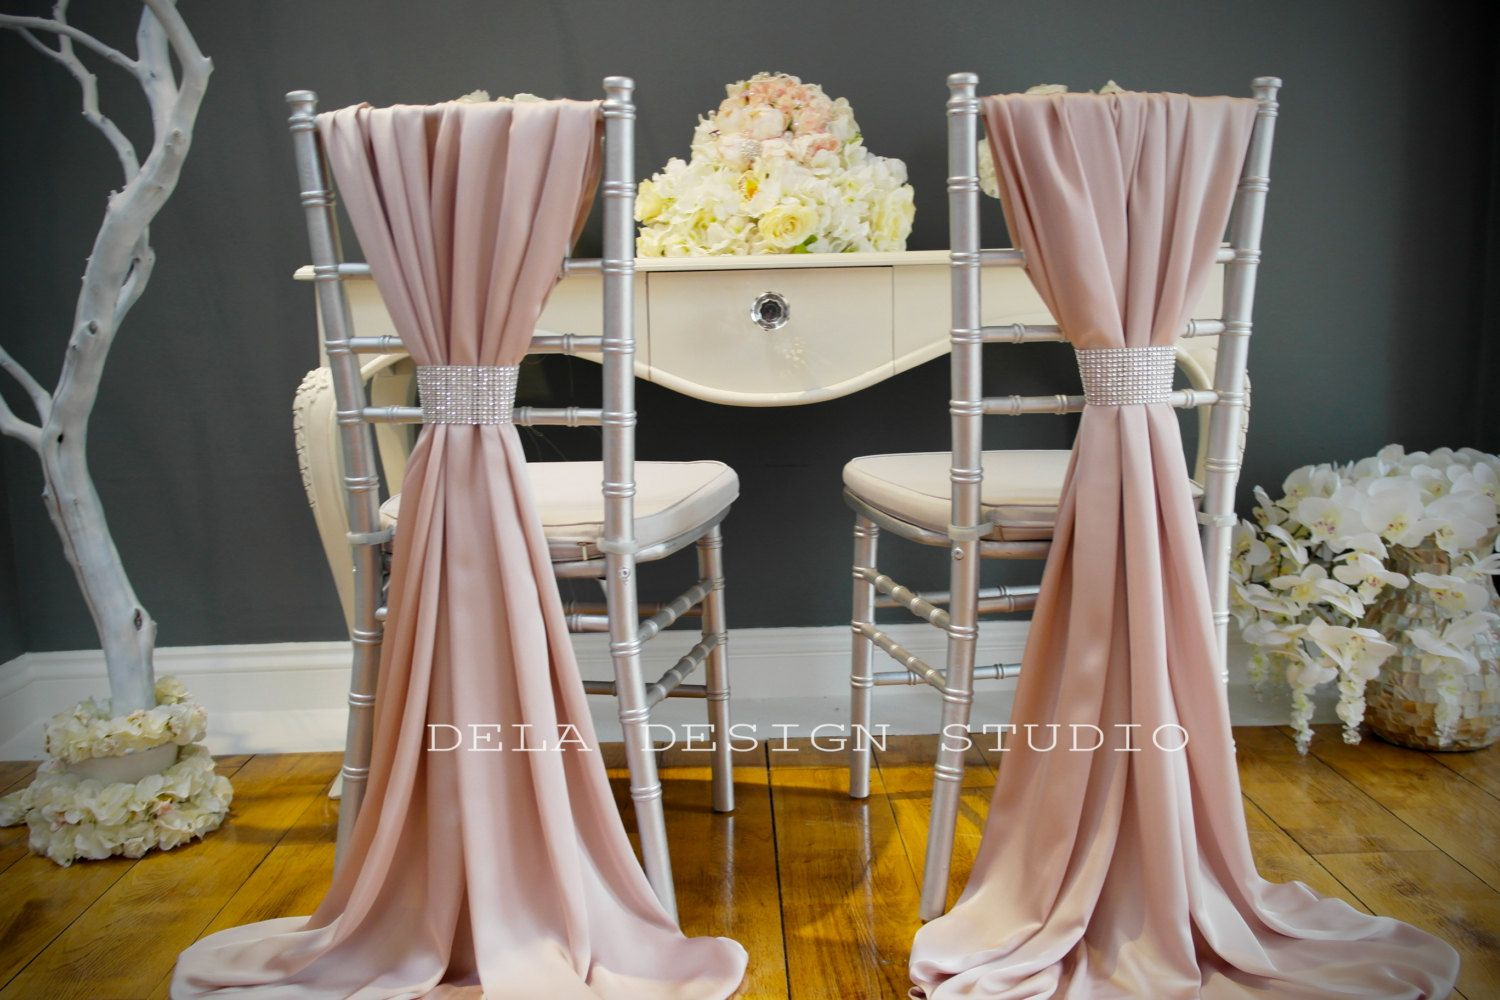 wedding chair covers pinterest desk melbourne silky cover sash blush pink by